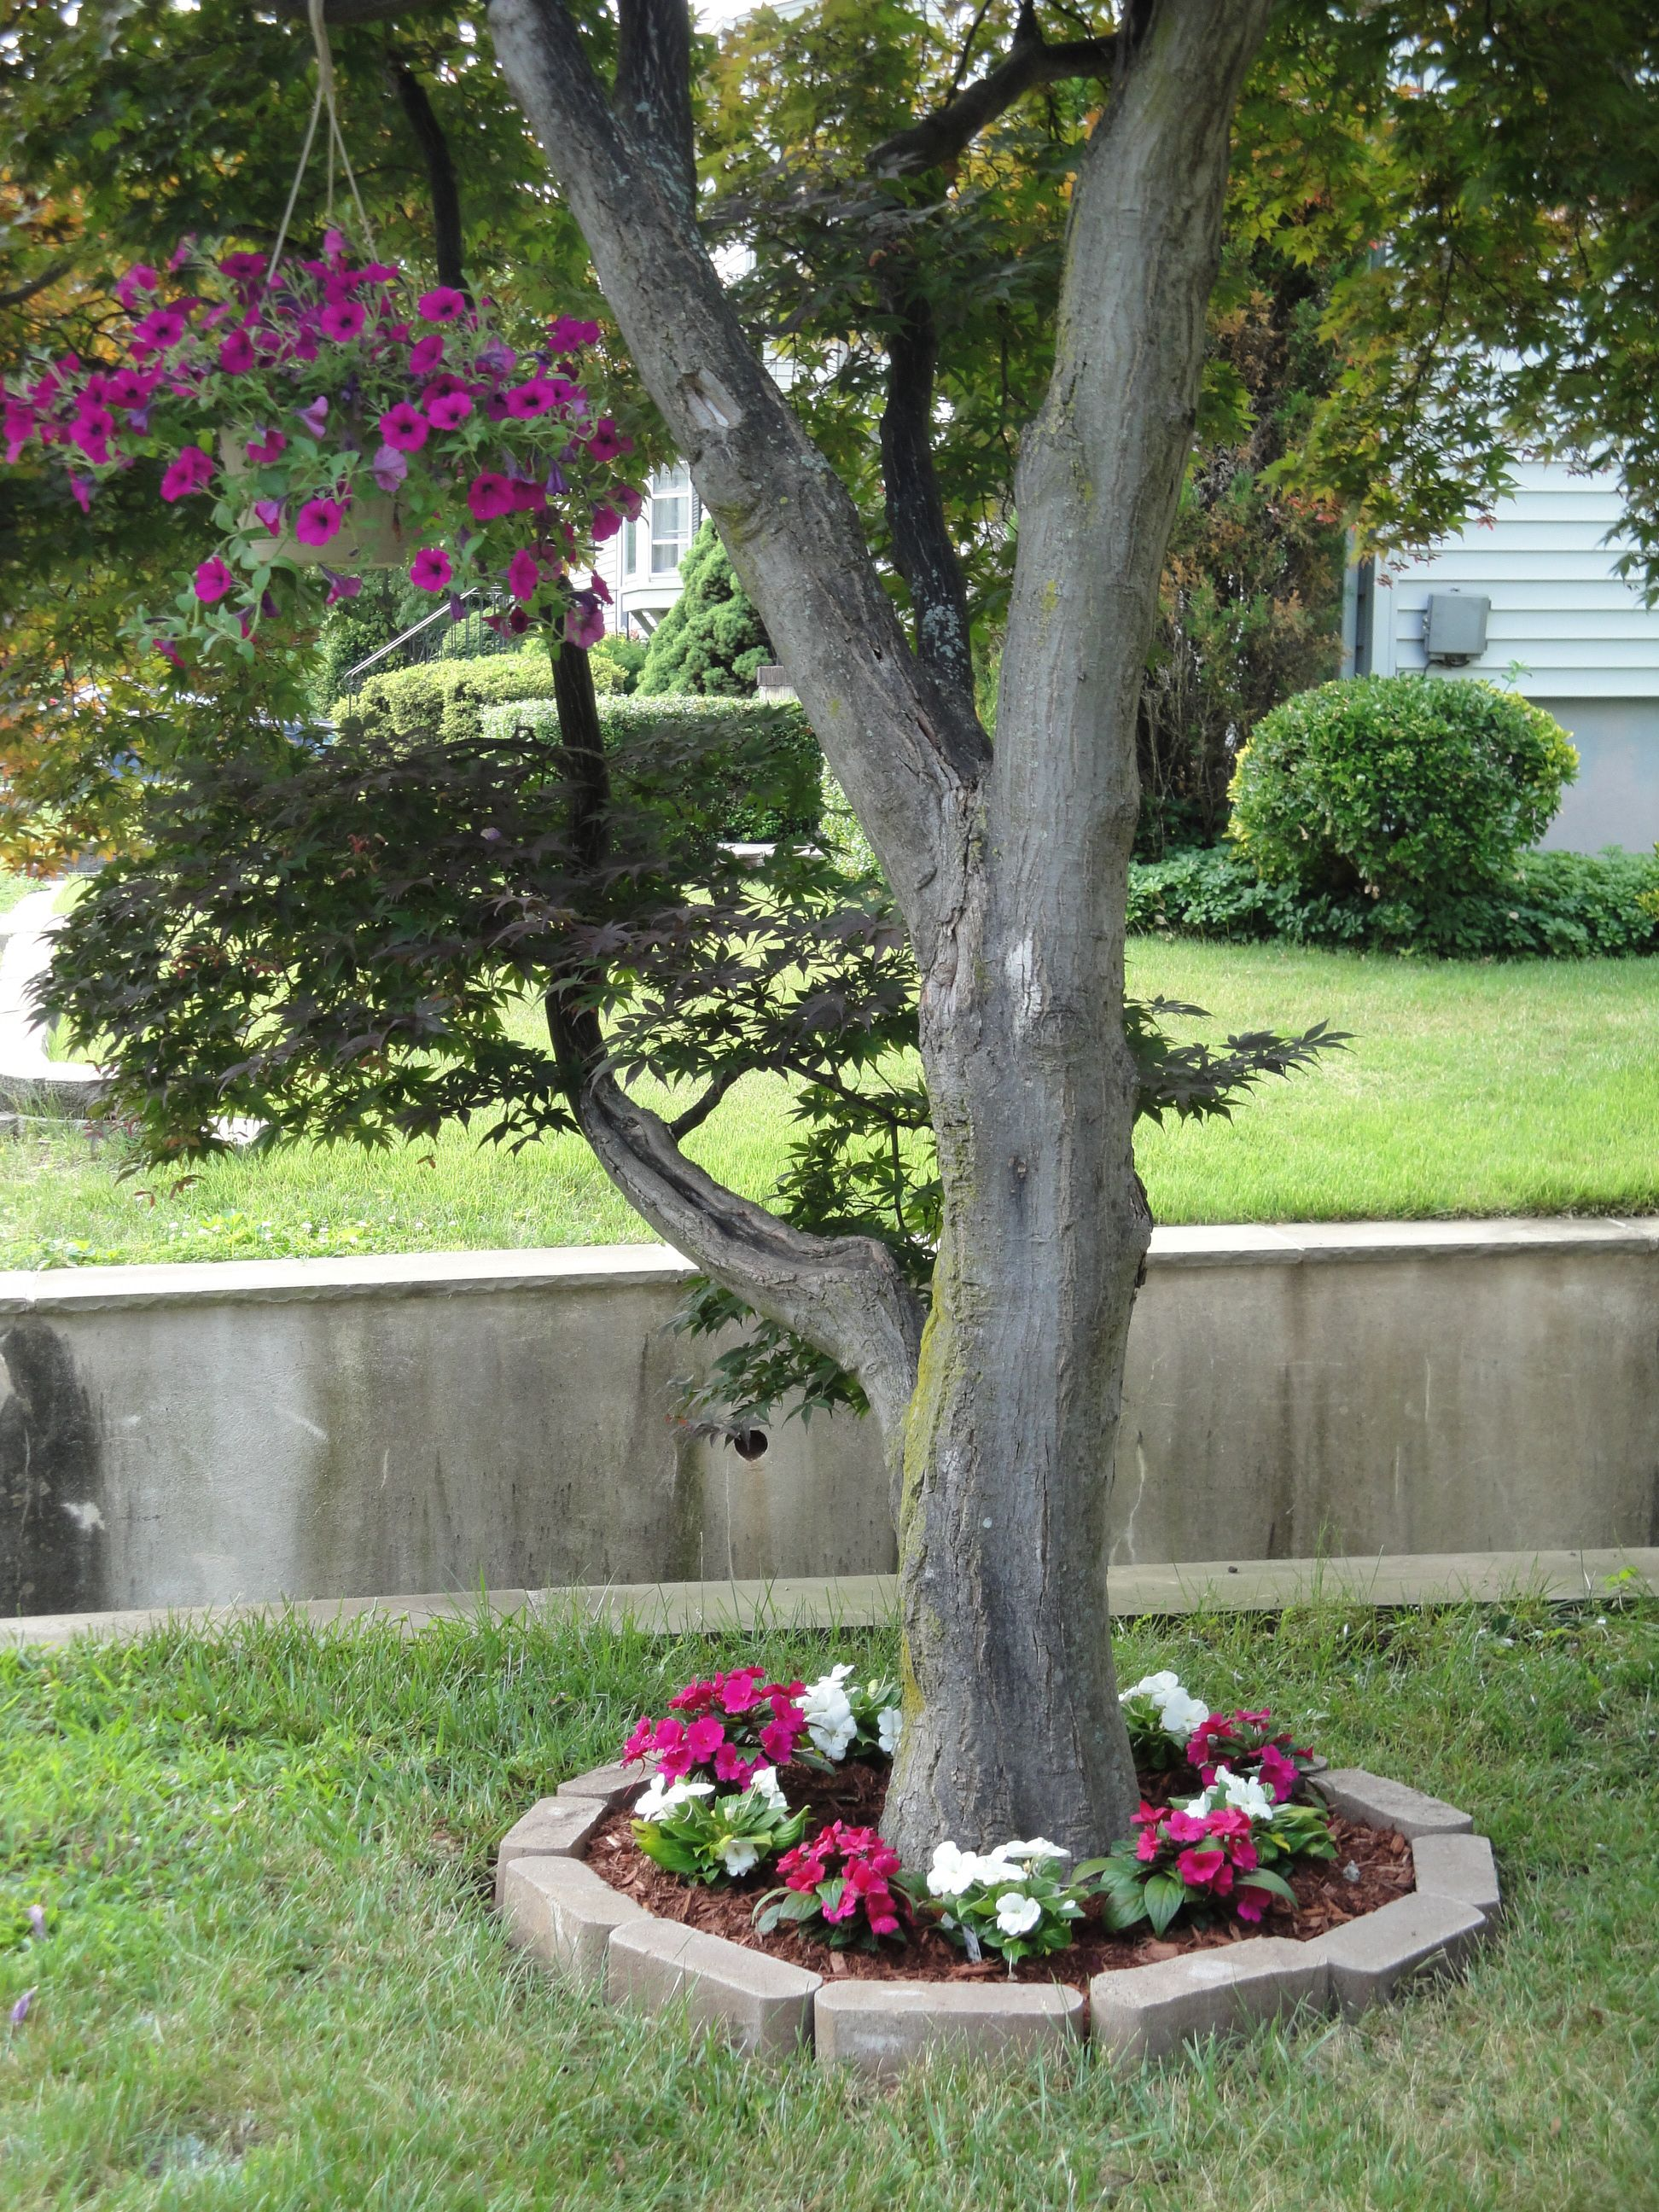 Stop weeds in flower beds - I Want To Do Flower Beds Around Our Gigantic Weeping Willow In The Back Yard And